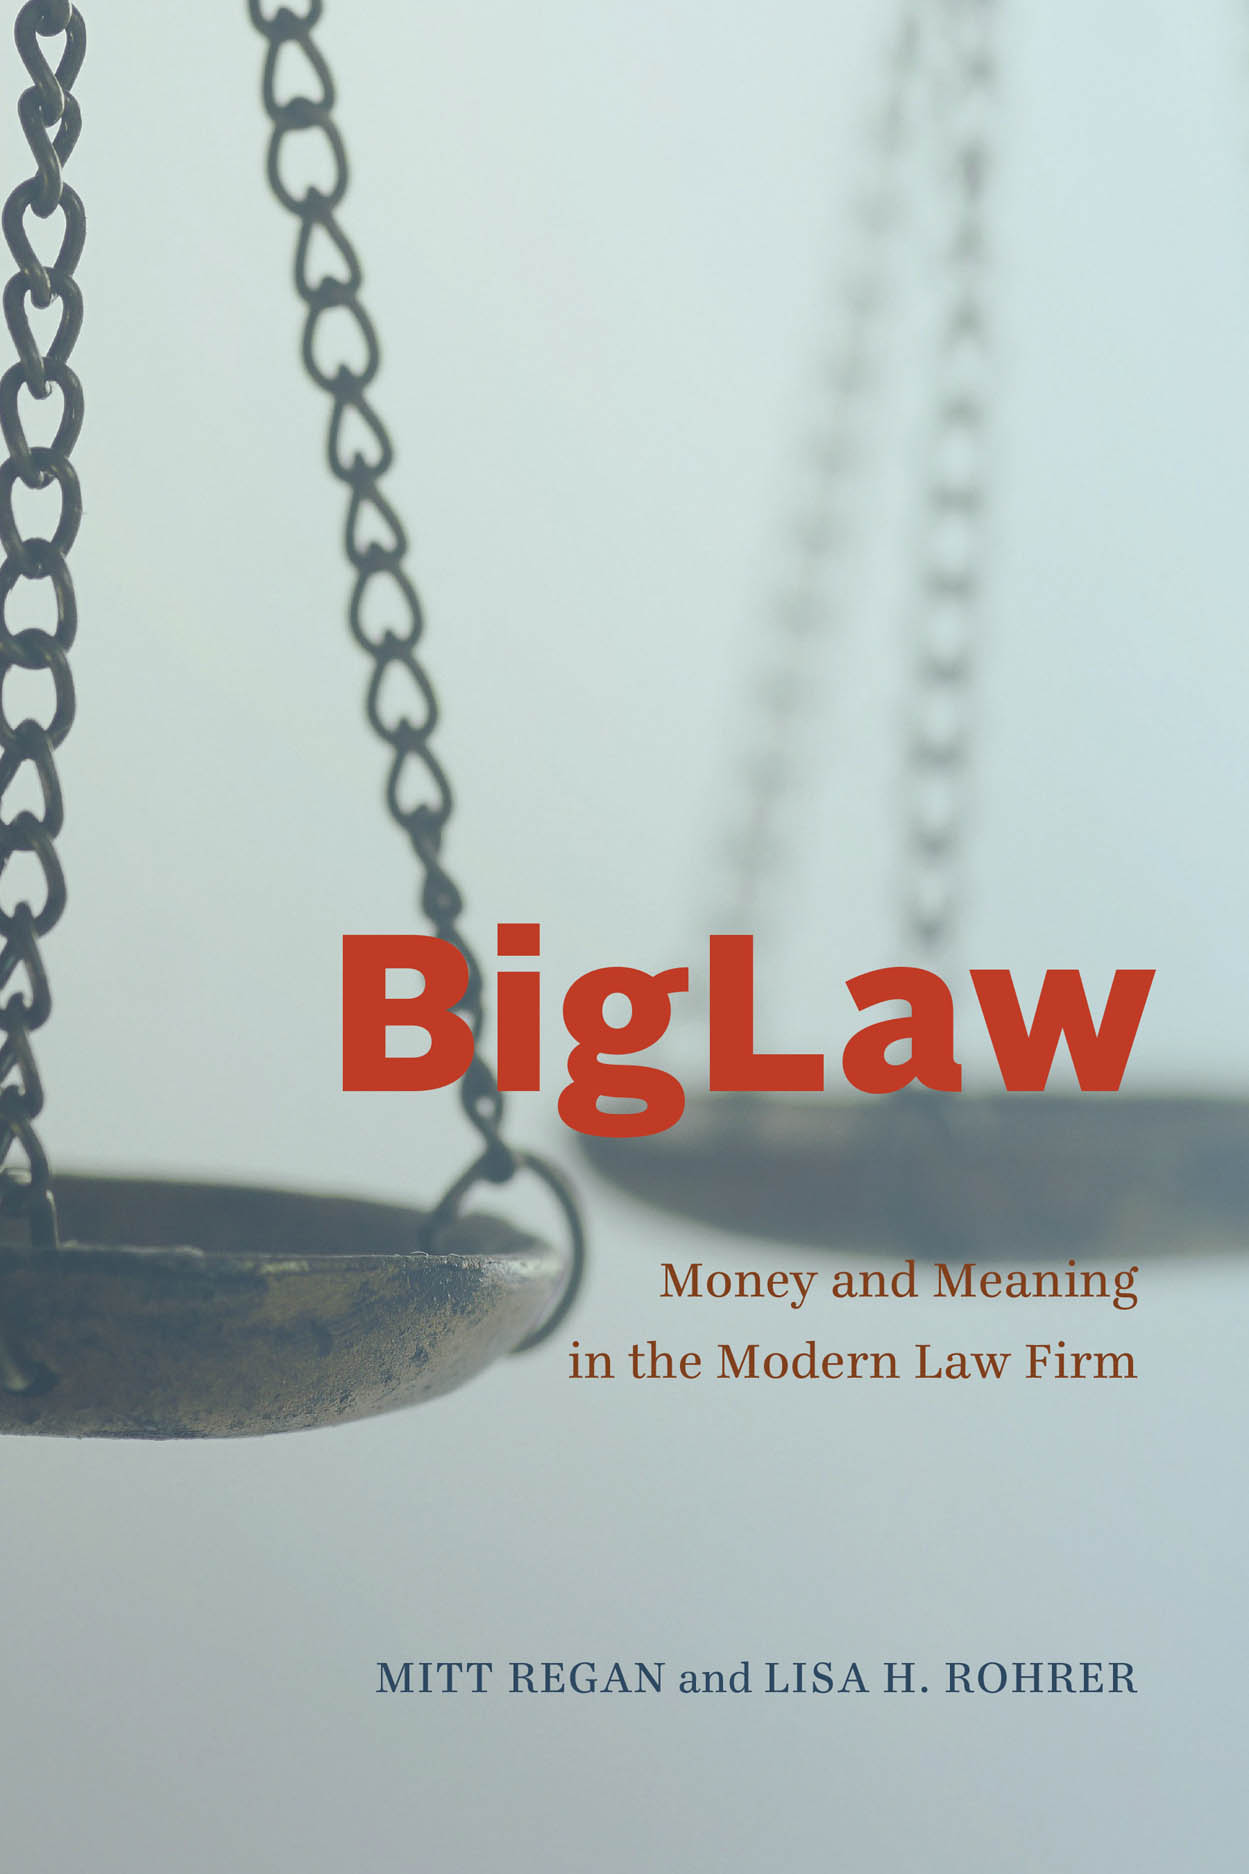 BigLaw: Money and Meaning in the Modern Law Firm